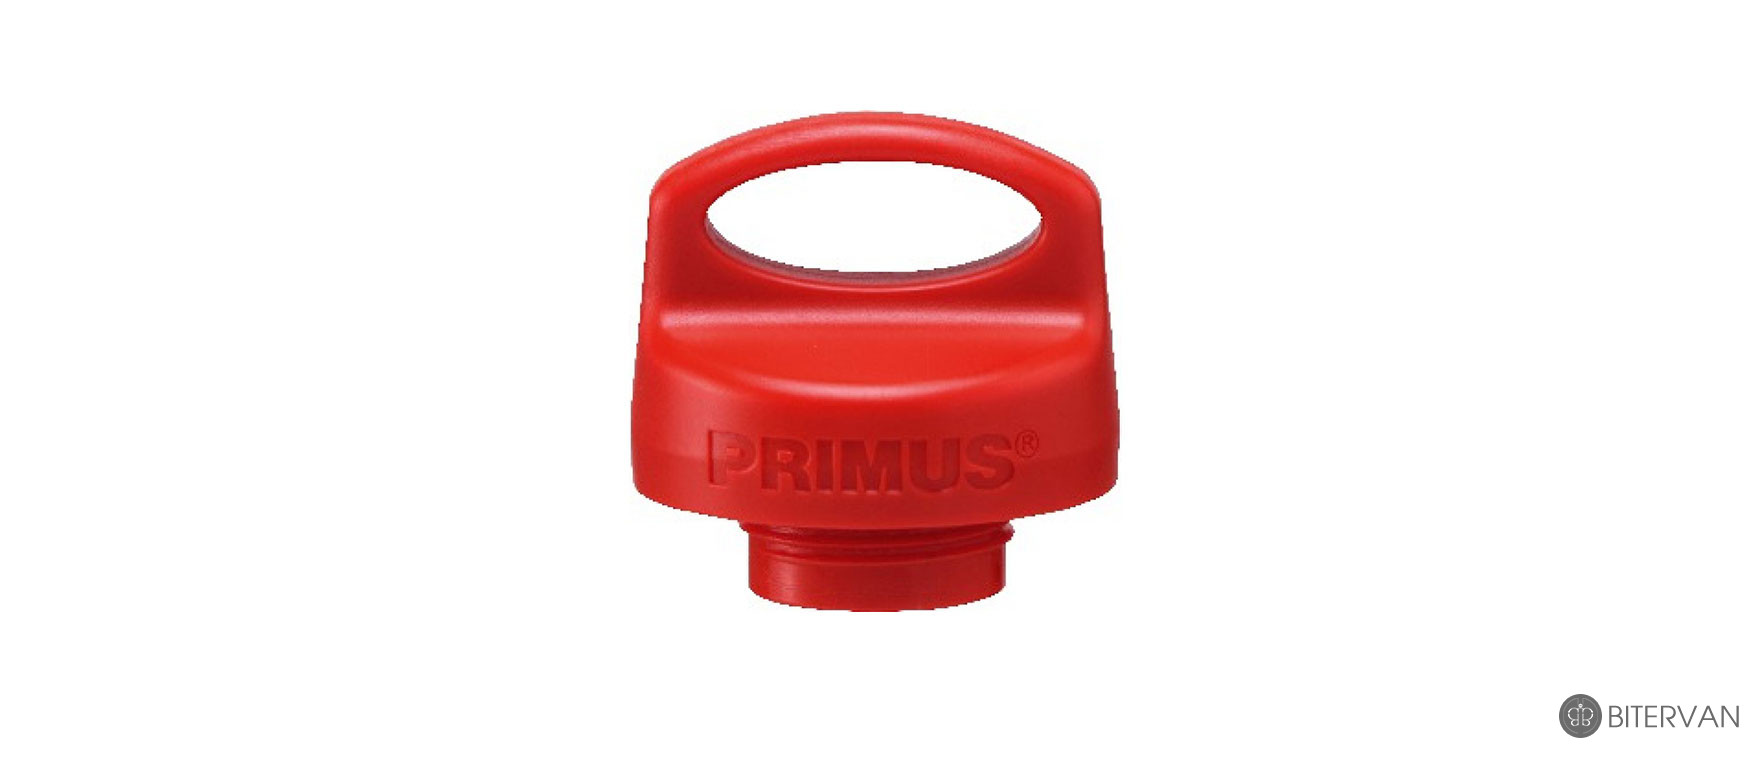 Primus Child Safe Fuel Bottle Cap